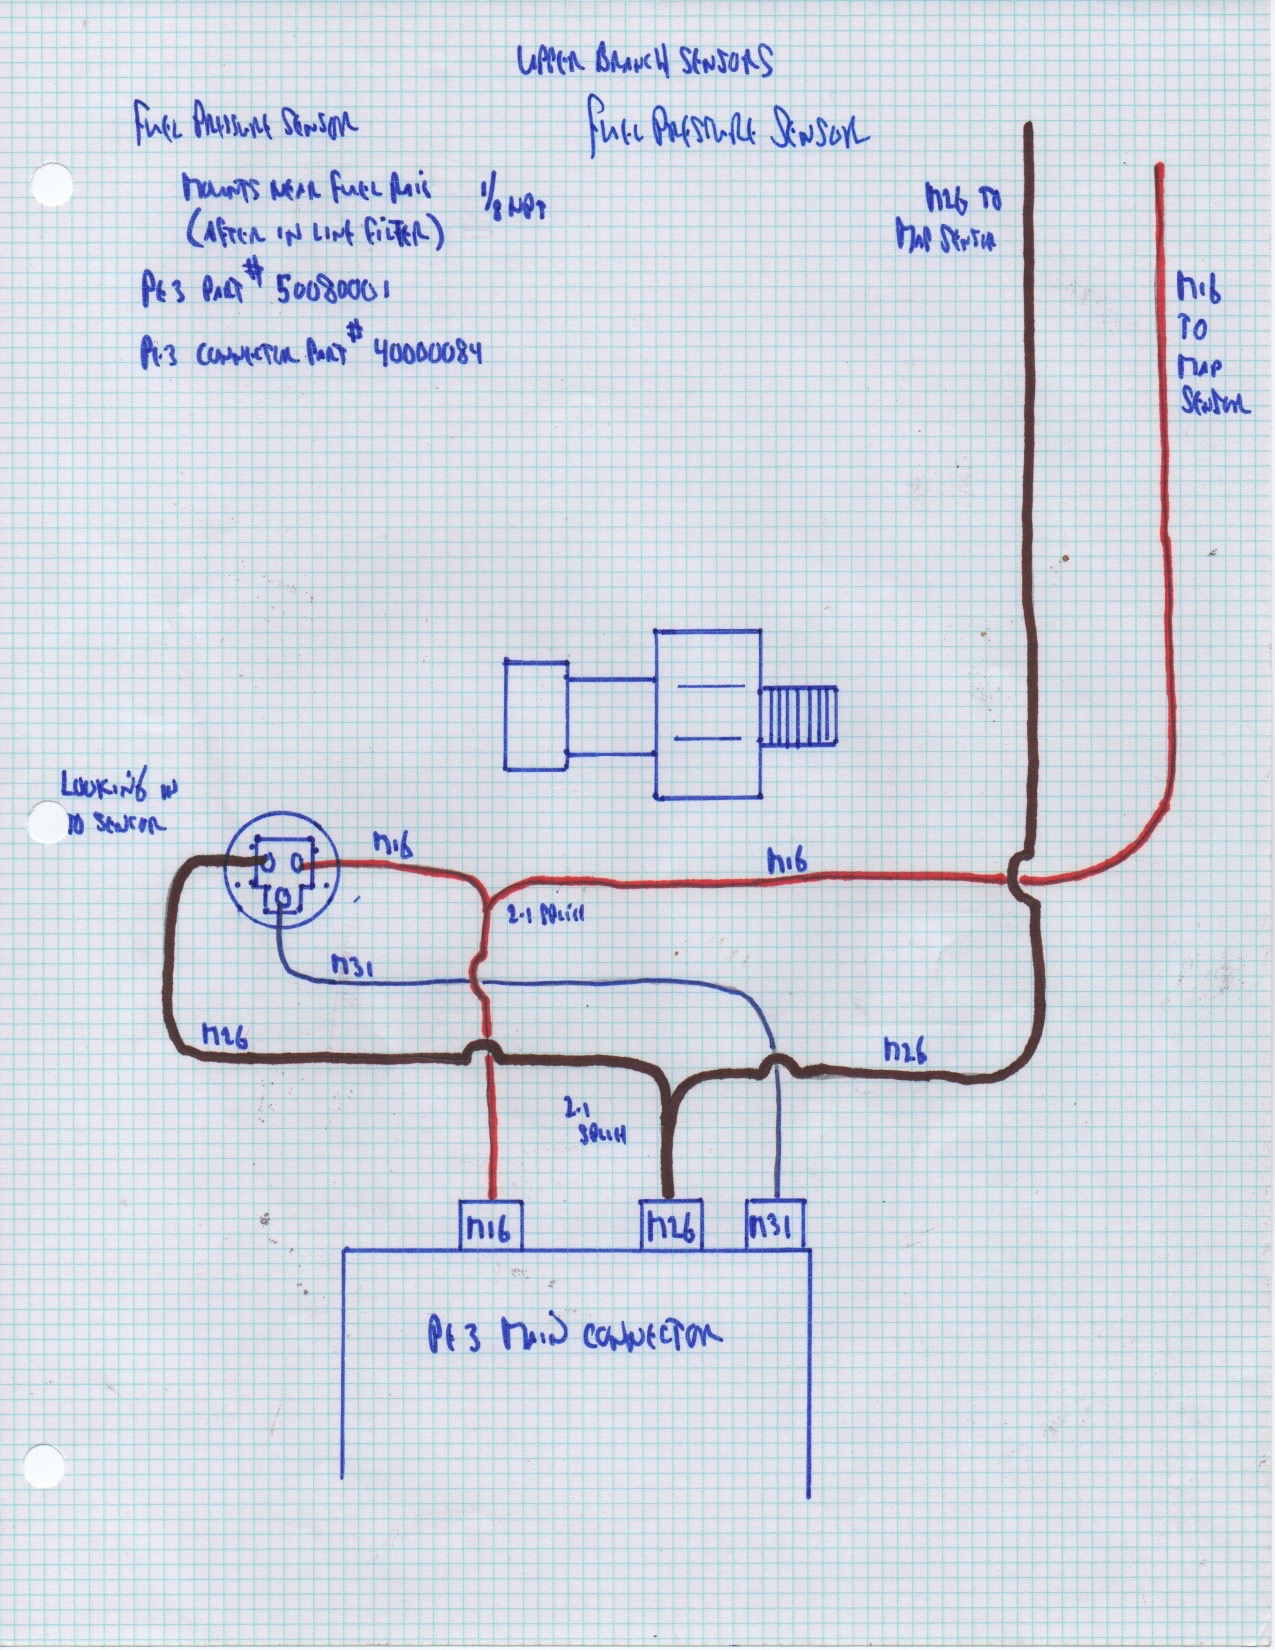 Fuel Pressure Wiring Diagram - Wiring Diagram Data on 3 wall diagram, fuse diagram, house wiring 3-way switch diagram, three switch wiring diagram, 3-way electrical connection diagram, easy 3 way switch diagram, 3 line diagram, 3-way lamp wiring diagram, grounding diagram, light switch wiring diagram, single pole diagram, single phase diagram, big bear 400 wiring diagram, 3 light diagram, meter socket diagram, 220 3 phase wiring diagram, receptacle diagram, towing wiring diagram, 3 speed switch wiring diagram,